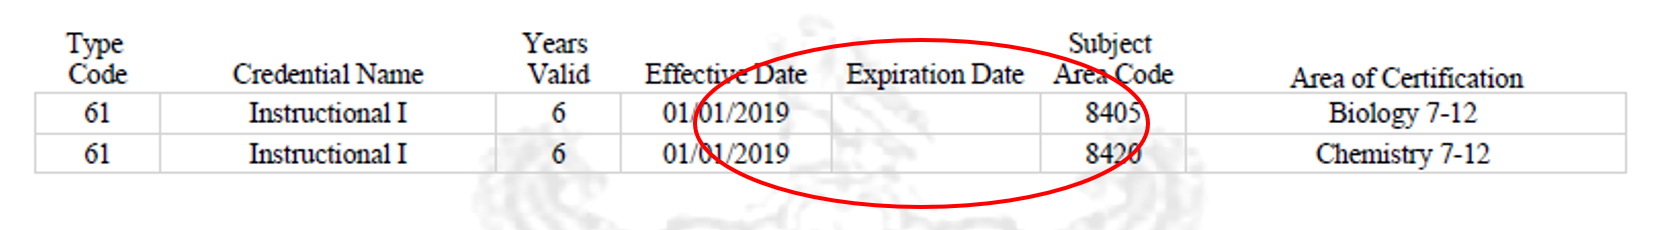 example of certificate without a calculated expiration date